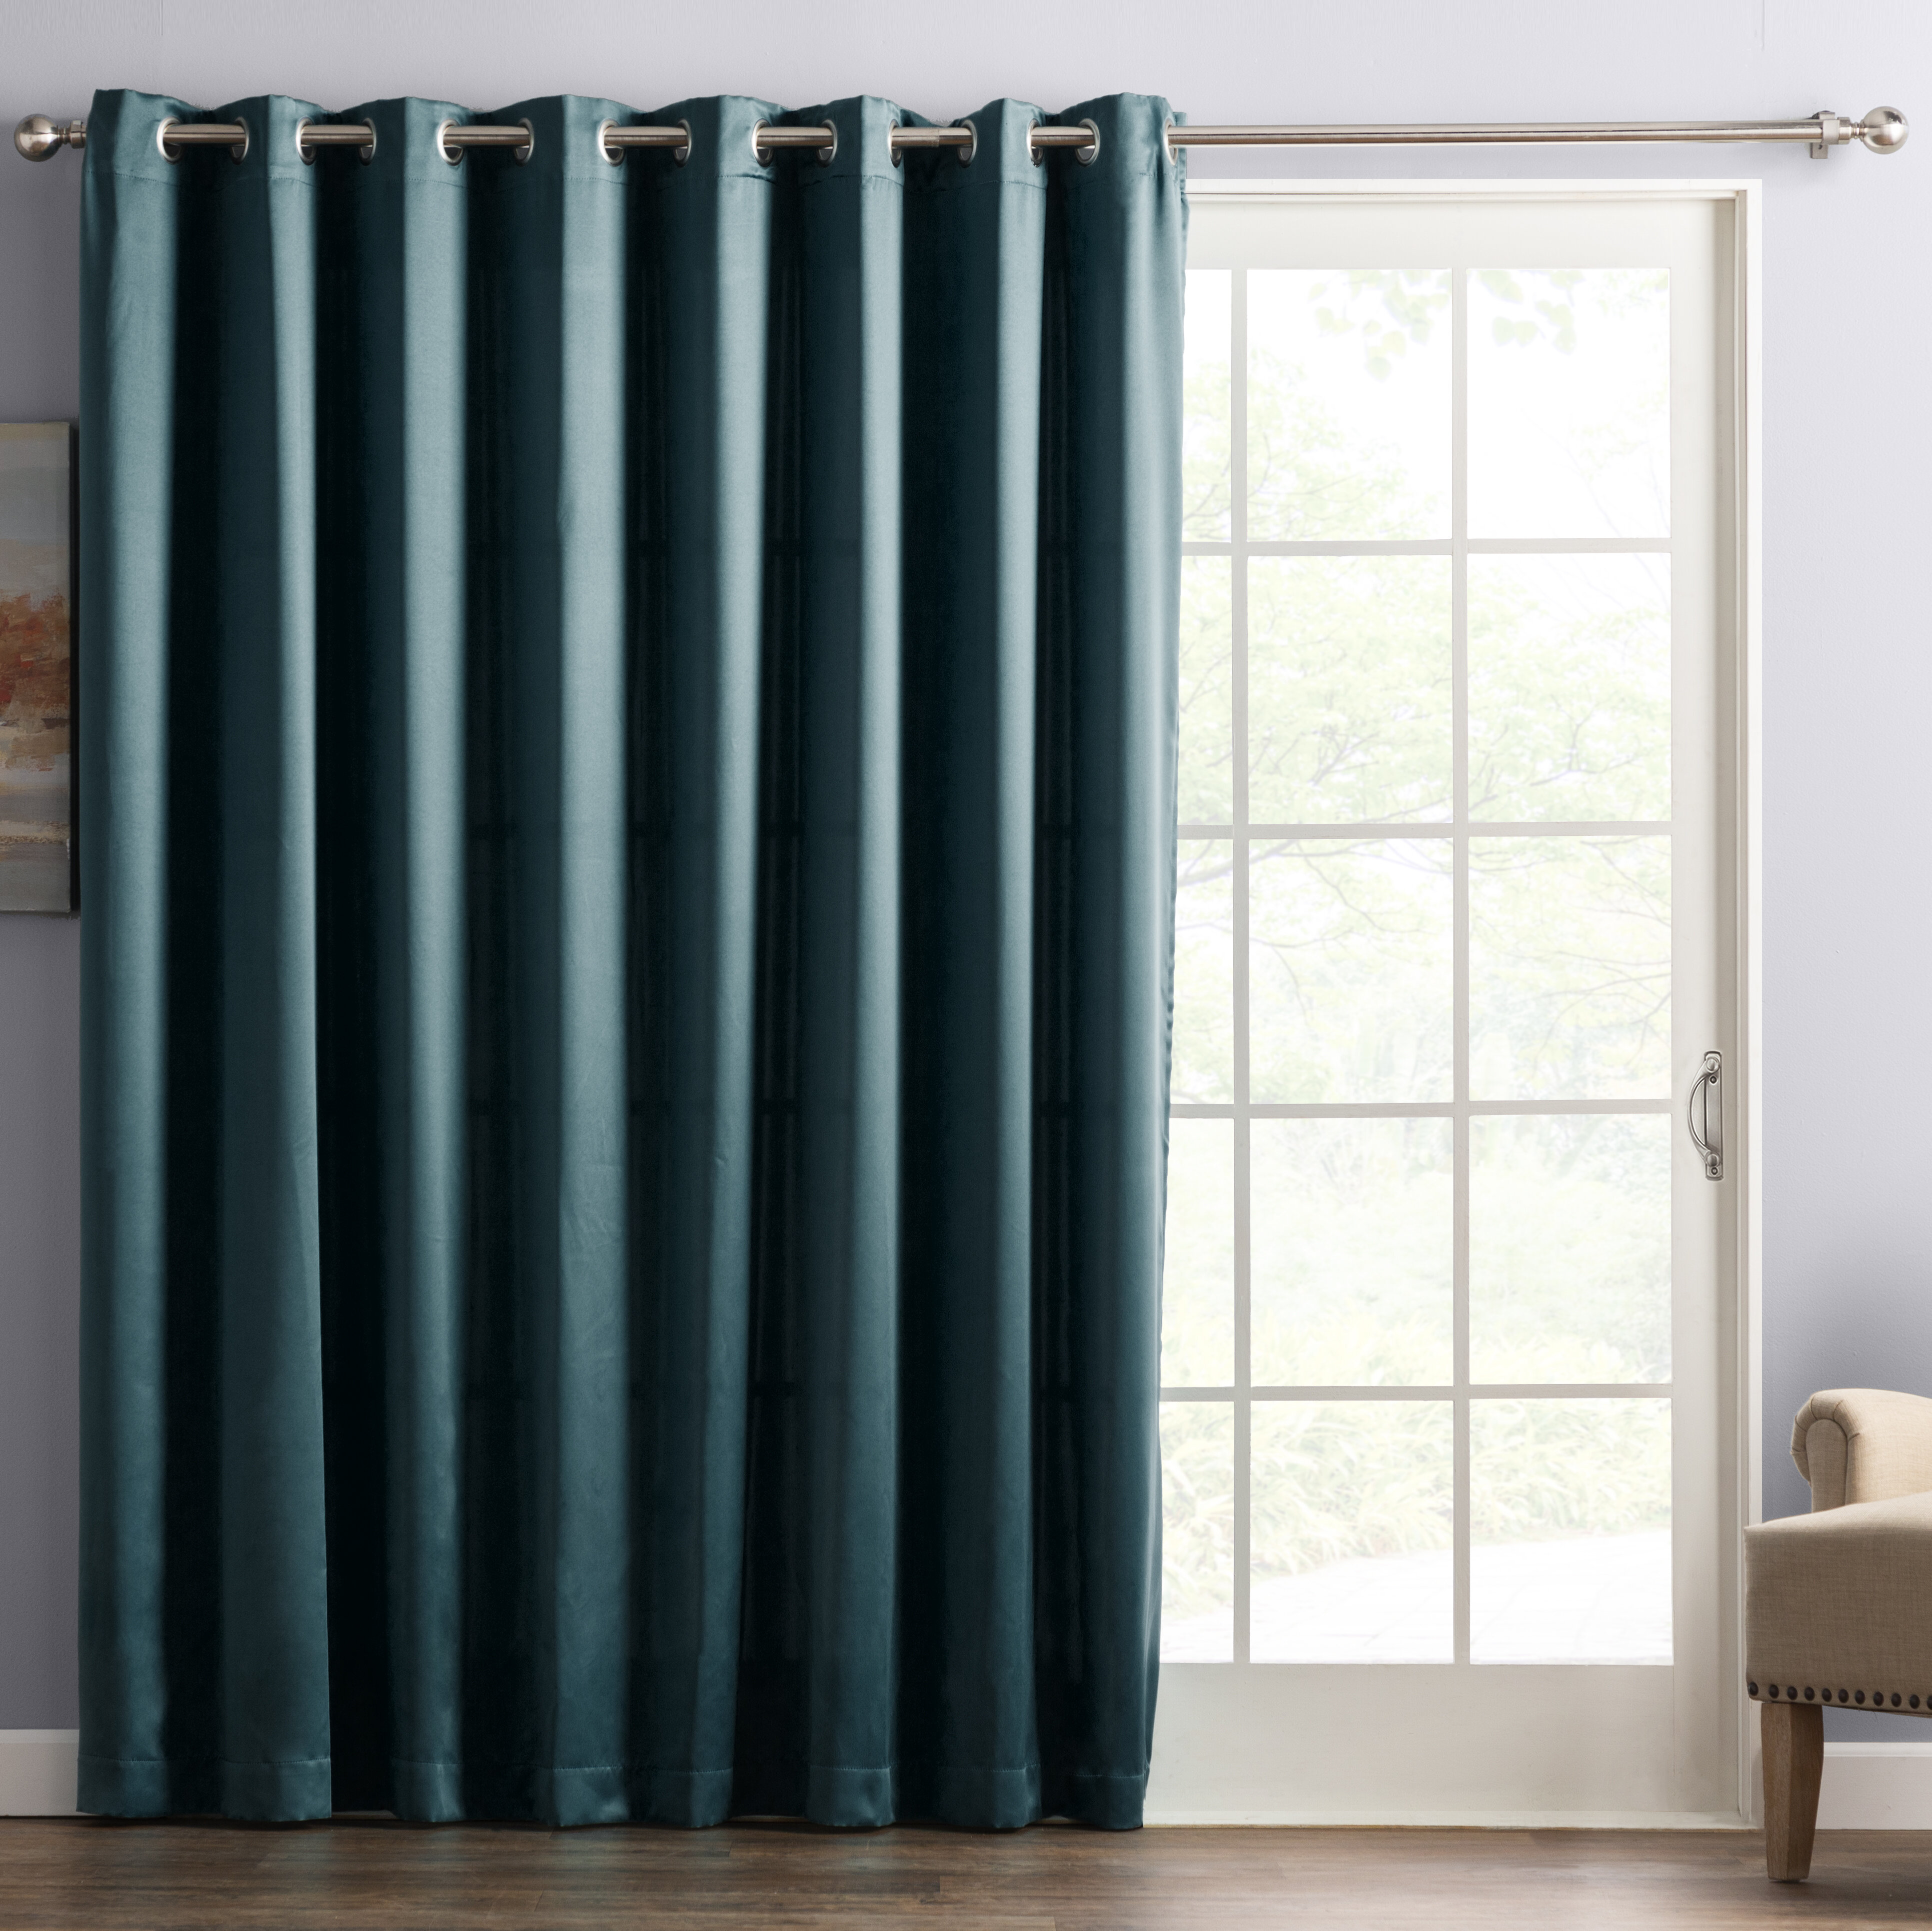 Trellis Accent Pure Cotton Window Panel Drape Decorative Grommet Curtain Set Of 2 Panels 48 X 84 Grey 48 X 84 Treewool Panels